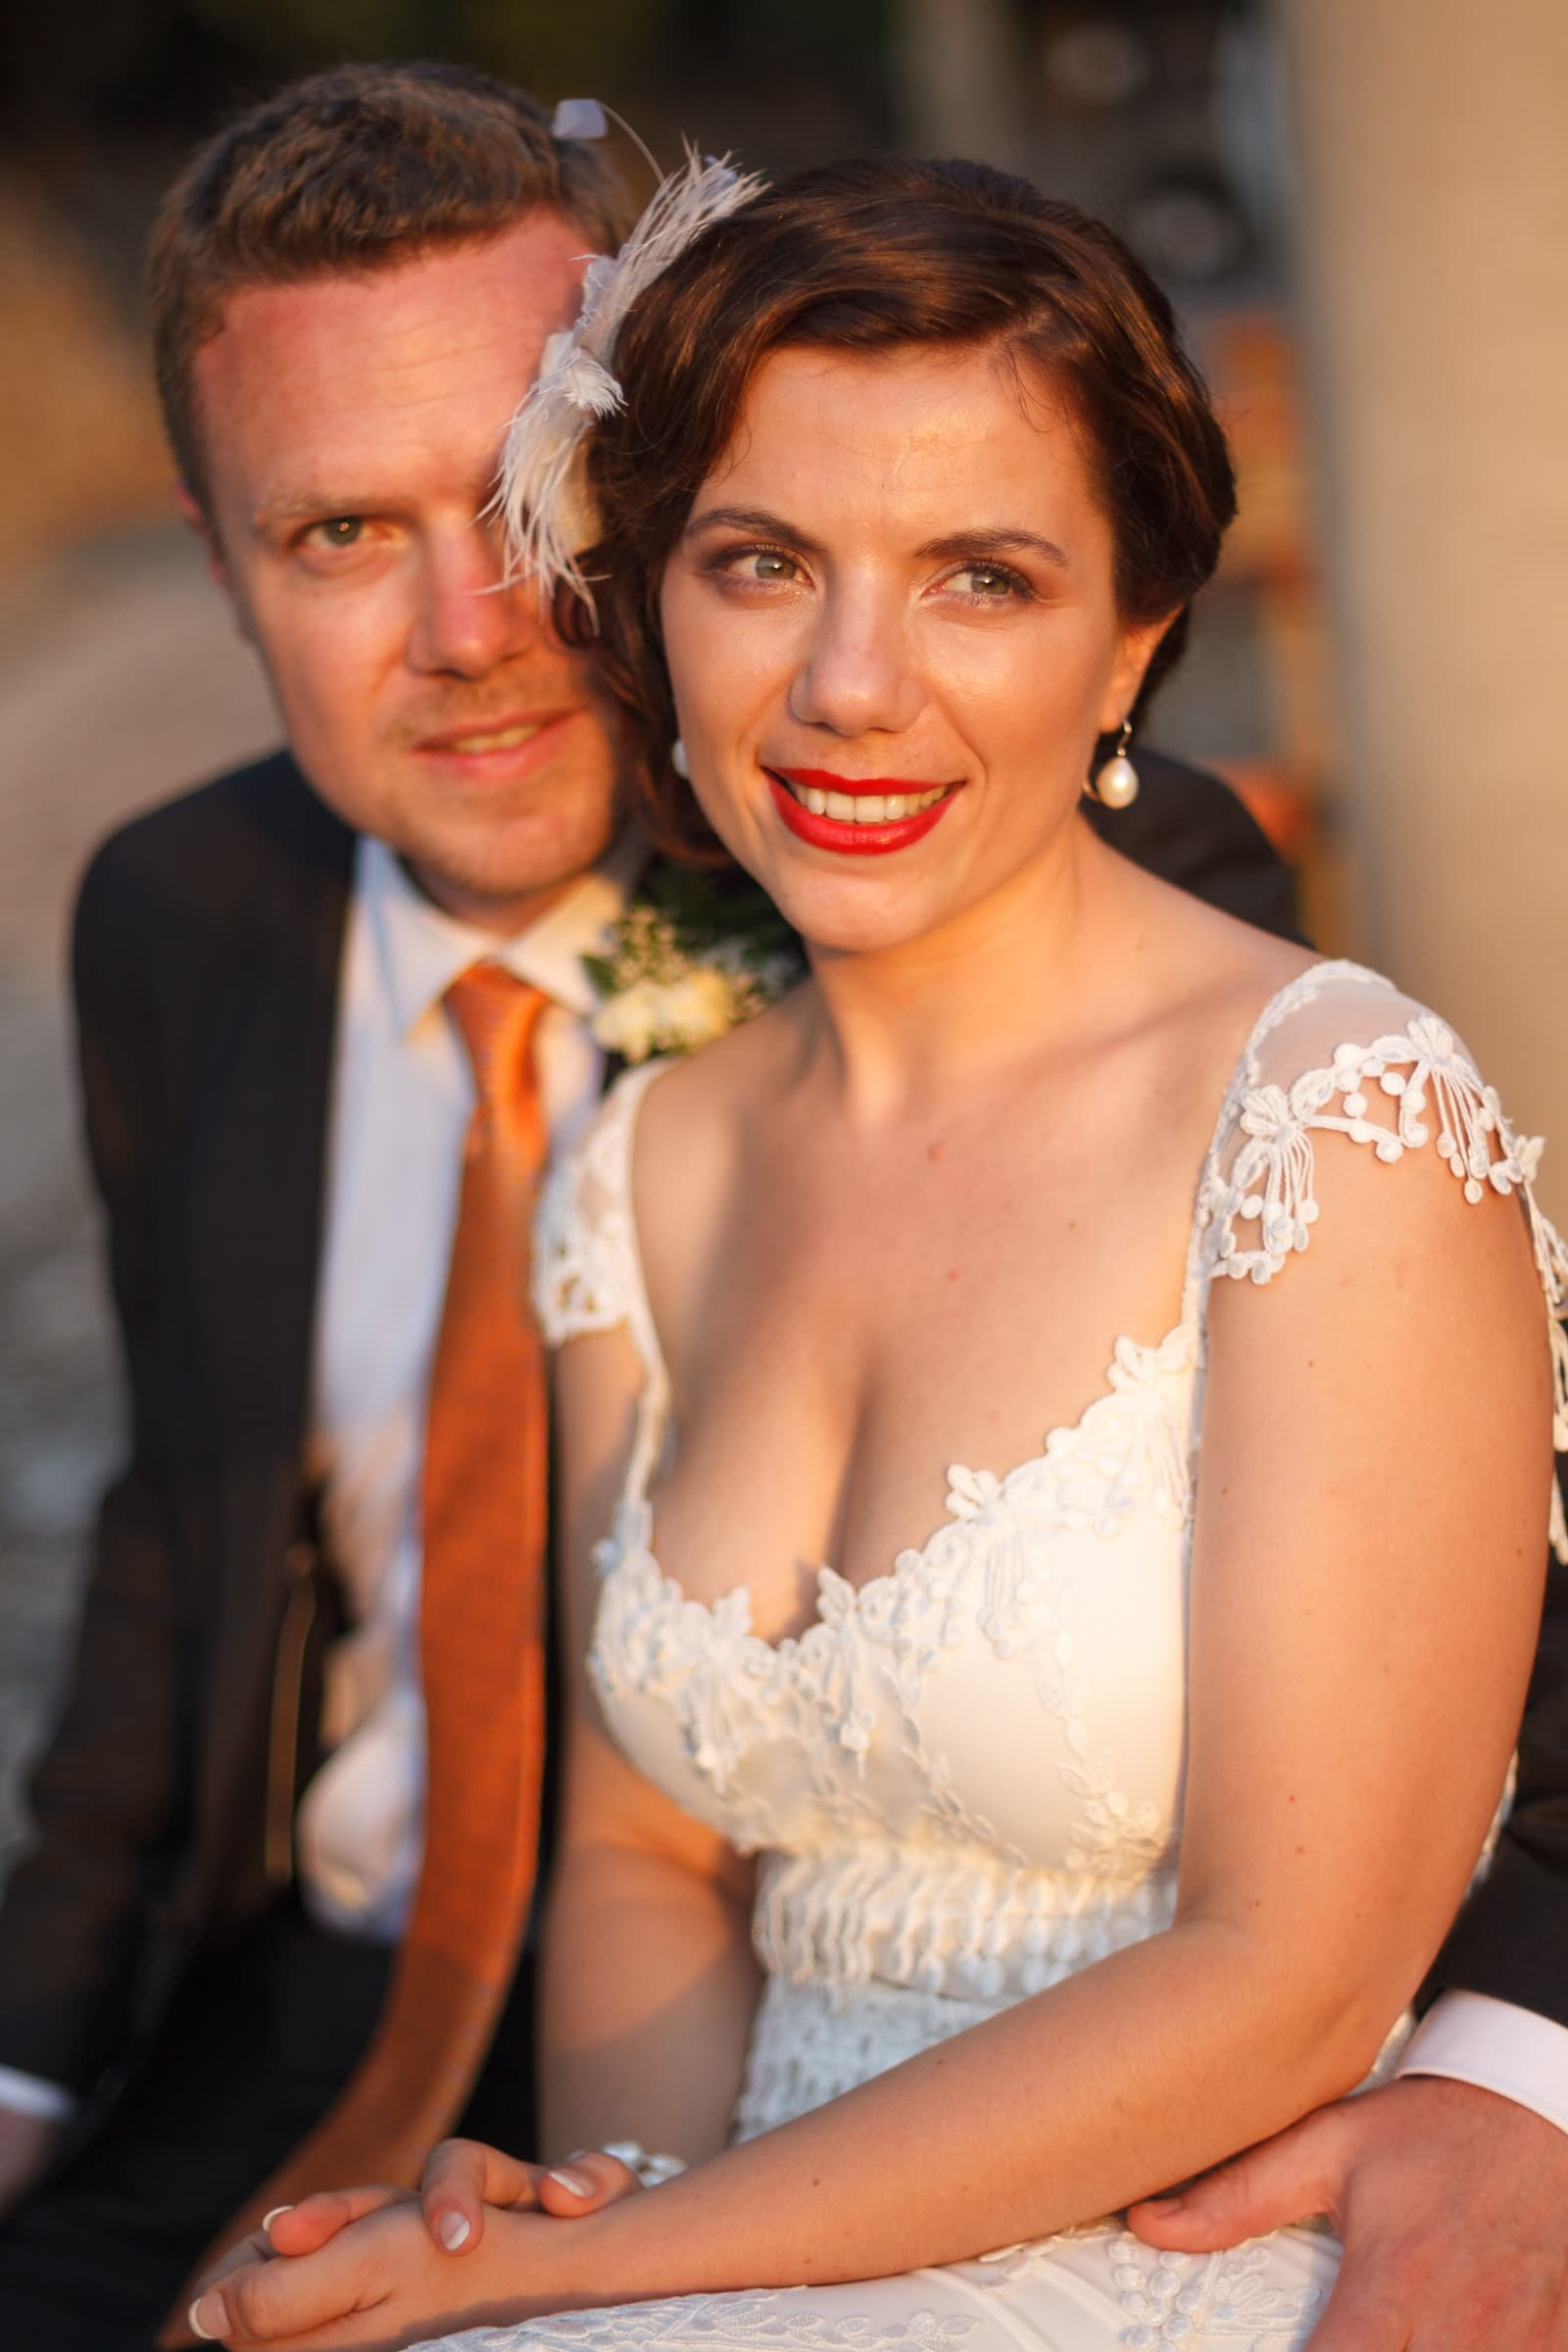 Bride and groom portrait with warm sunlight on their faces just after their Sicily Wedding ceremony in Milazzo, Italy